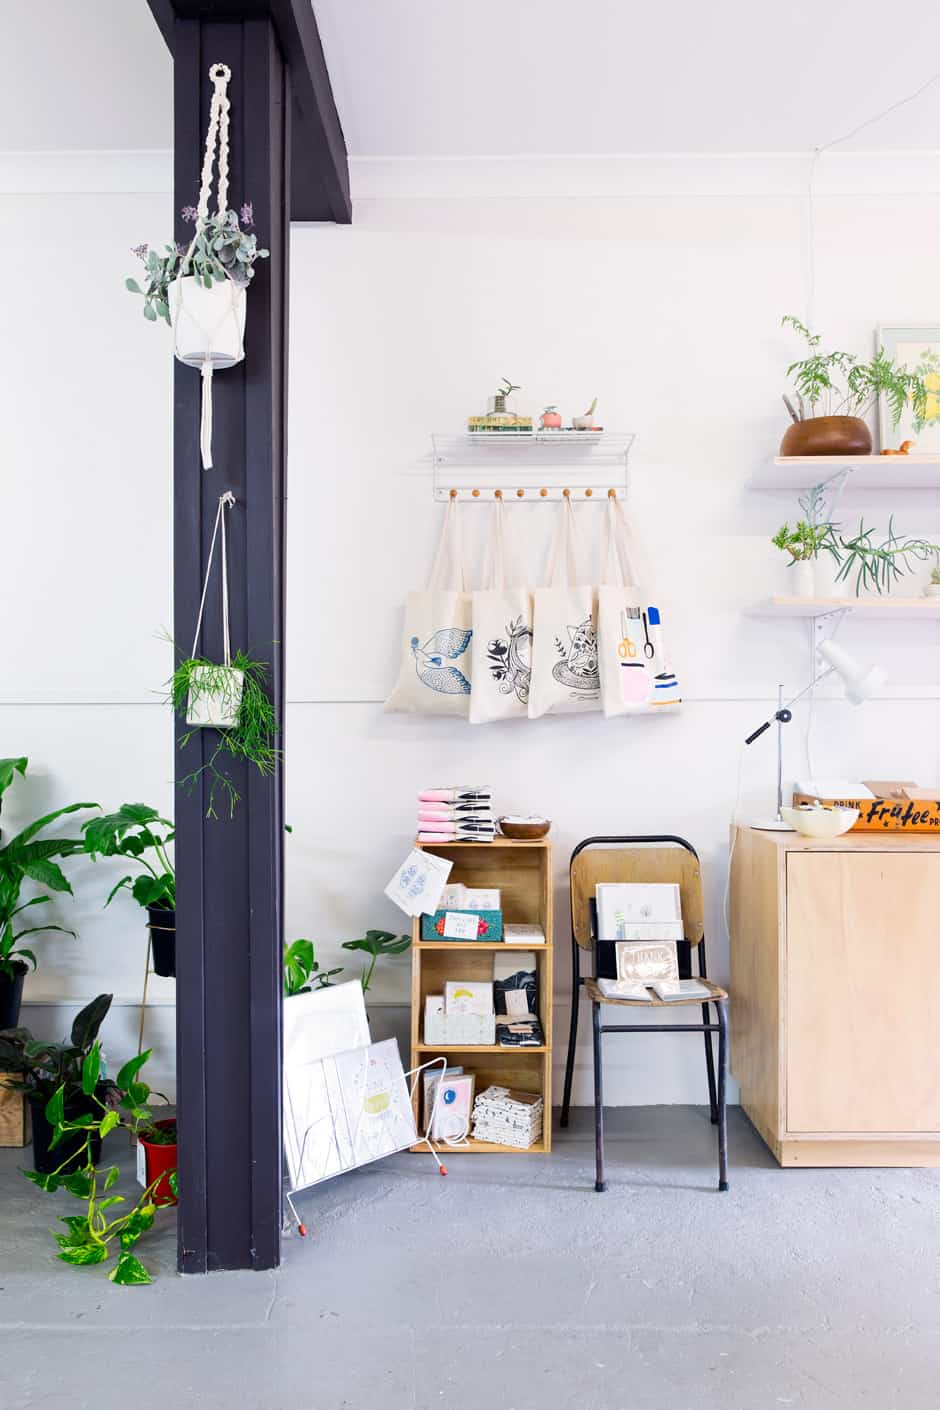 OPPOSITE, TOP RIGHT There's a well-edited selection of covetable pieces up for grabs in the shop.